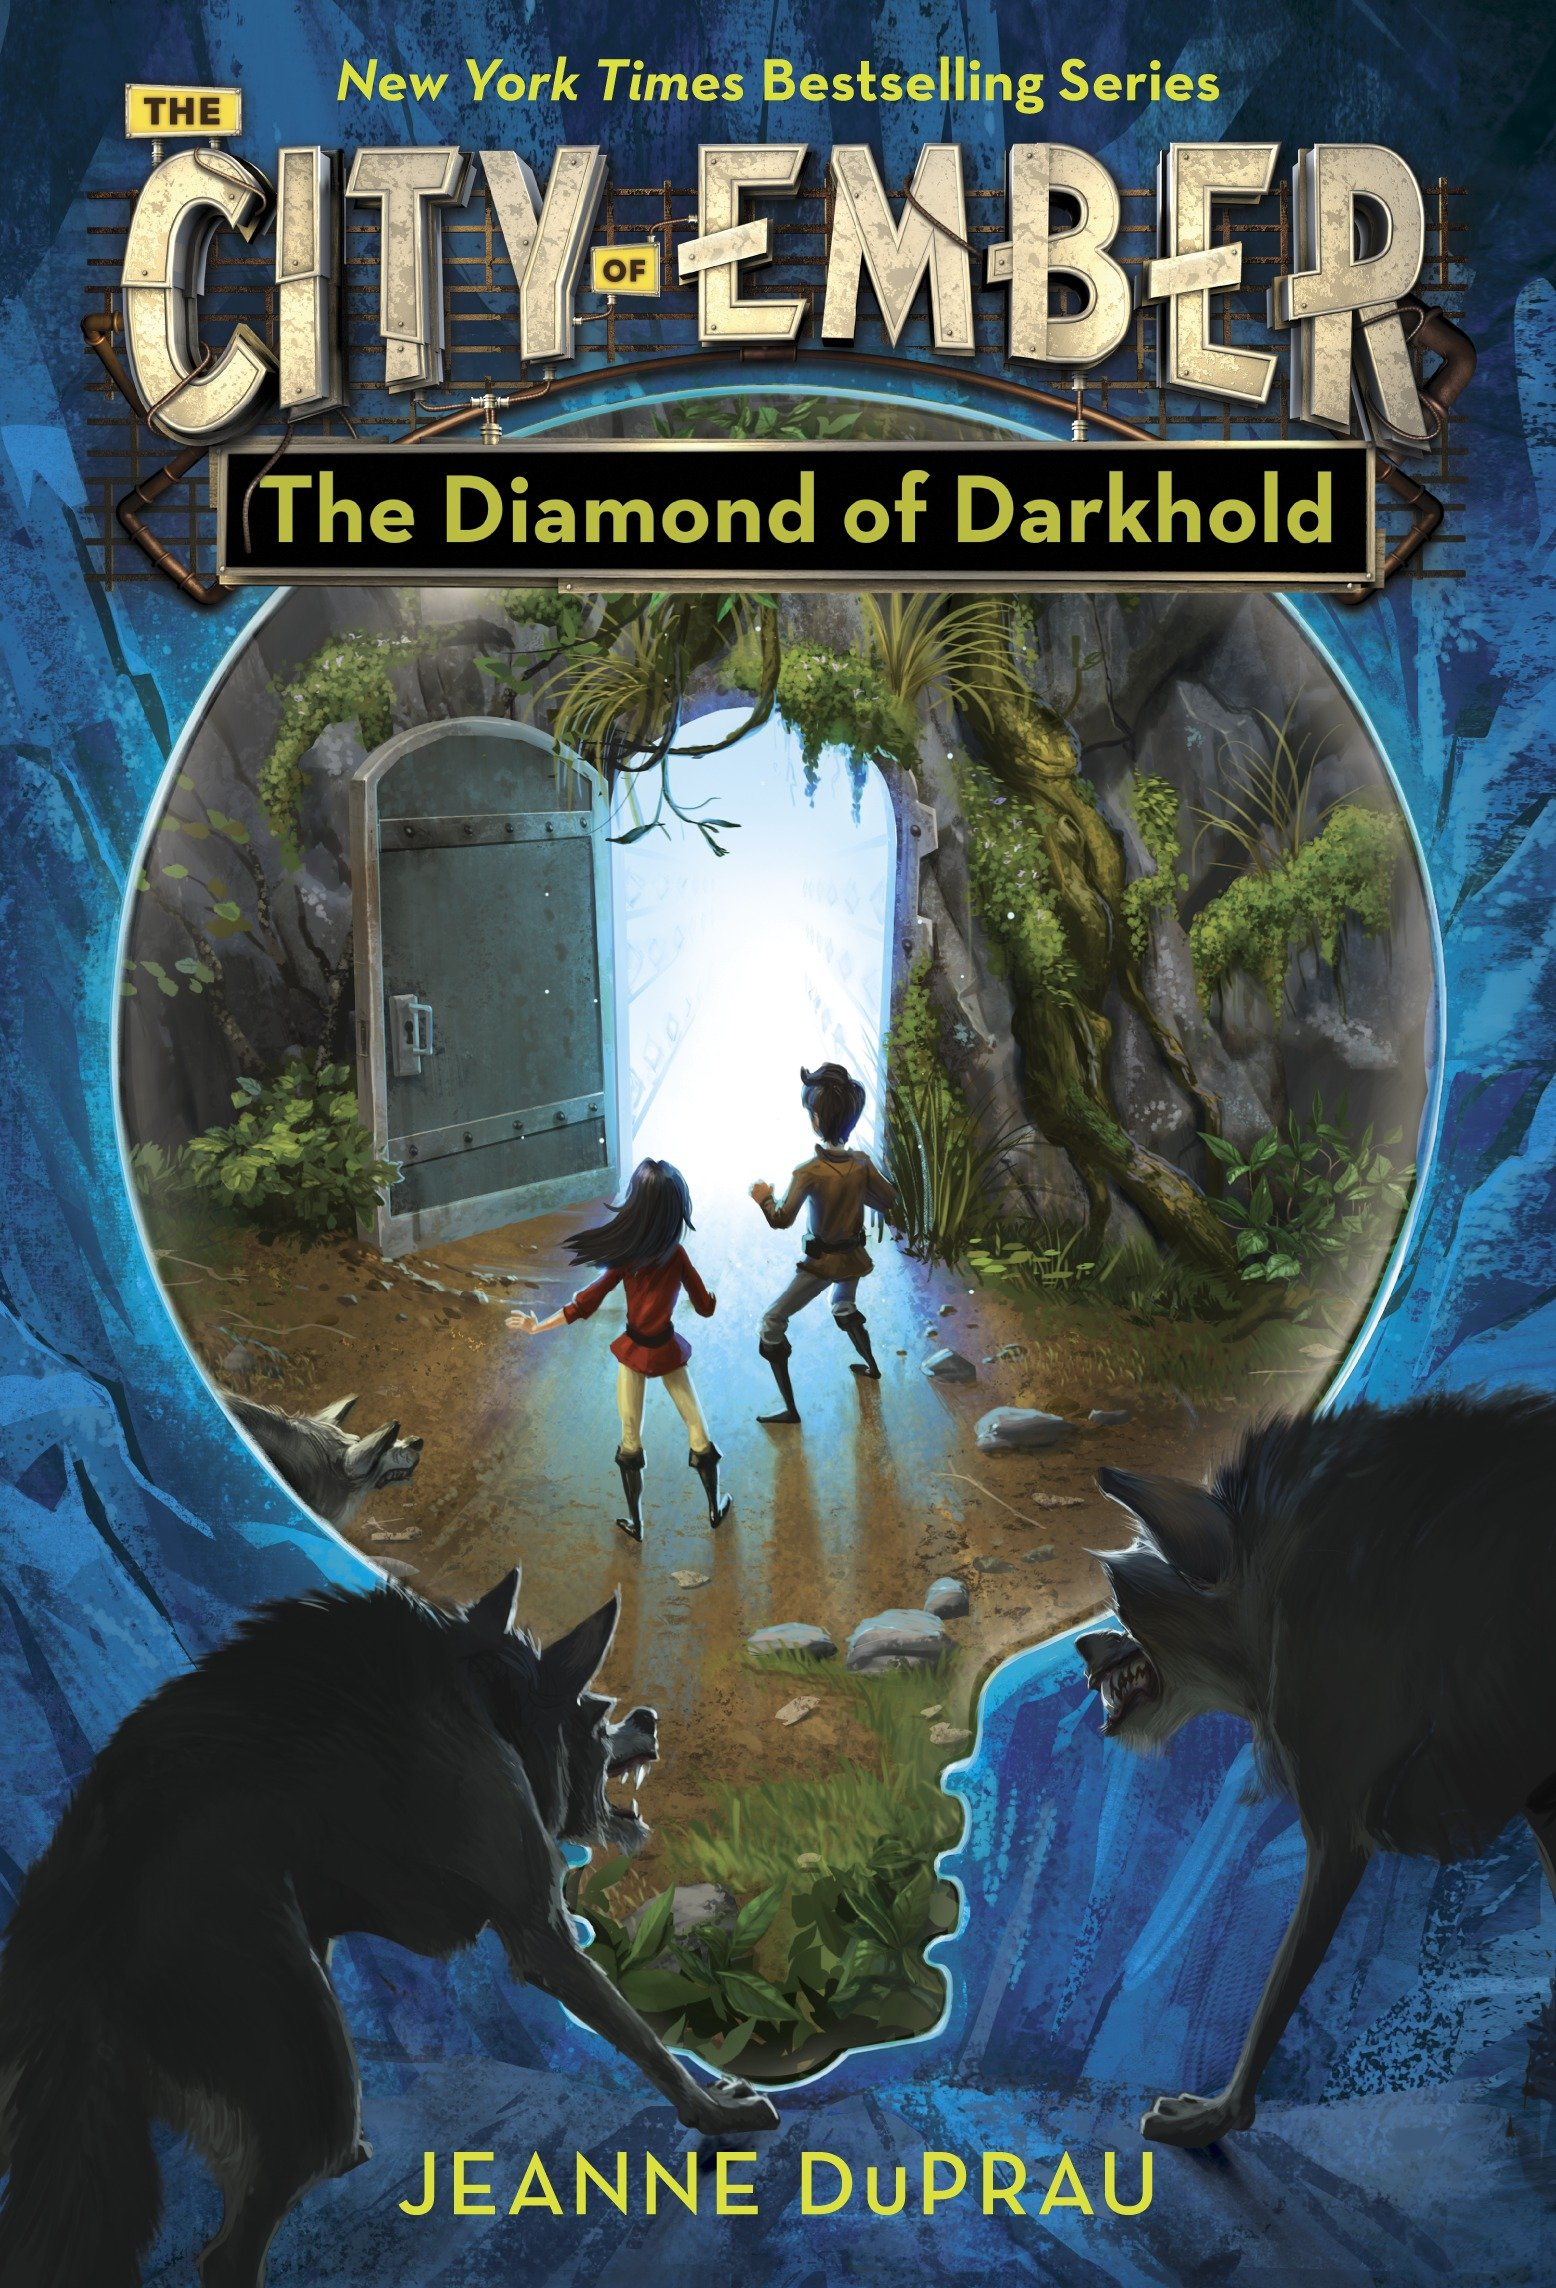 The diamond of darkhold The Fourth Book of Ember cover image